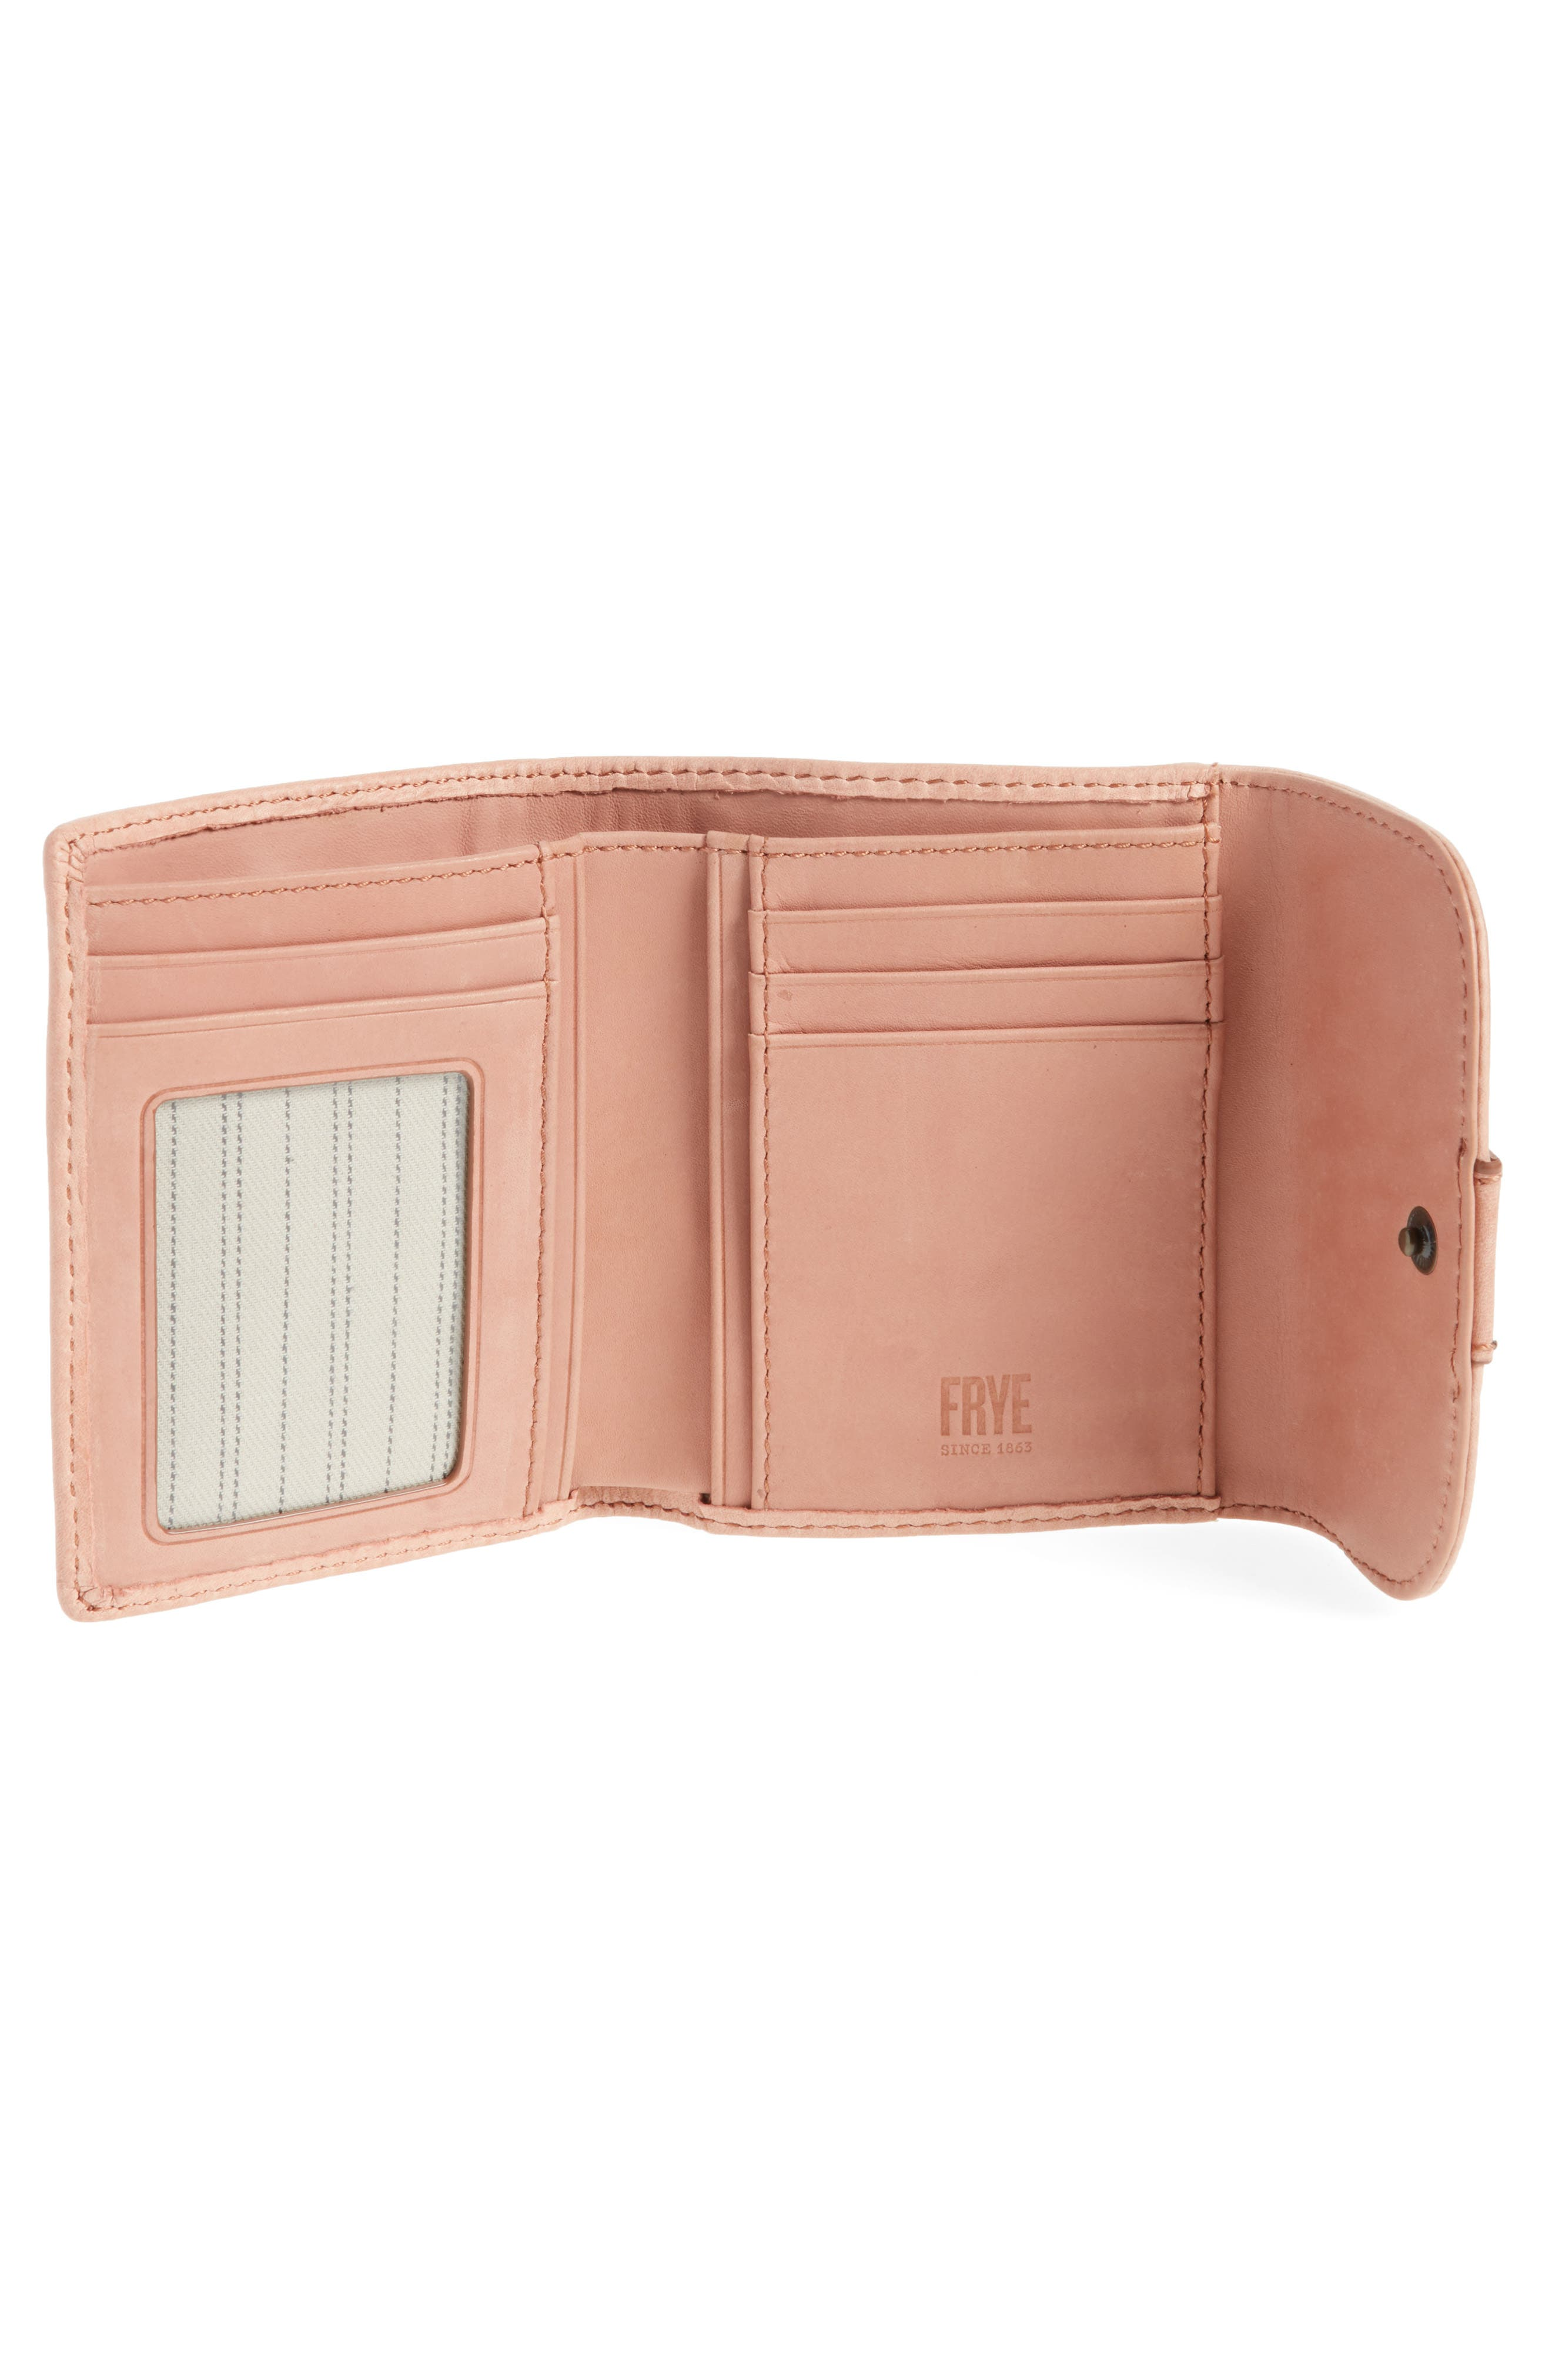 Melissa Medium Trifold Leather Wallet,                             Alternate thumbnail 2, color,                             Dusty Rose